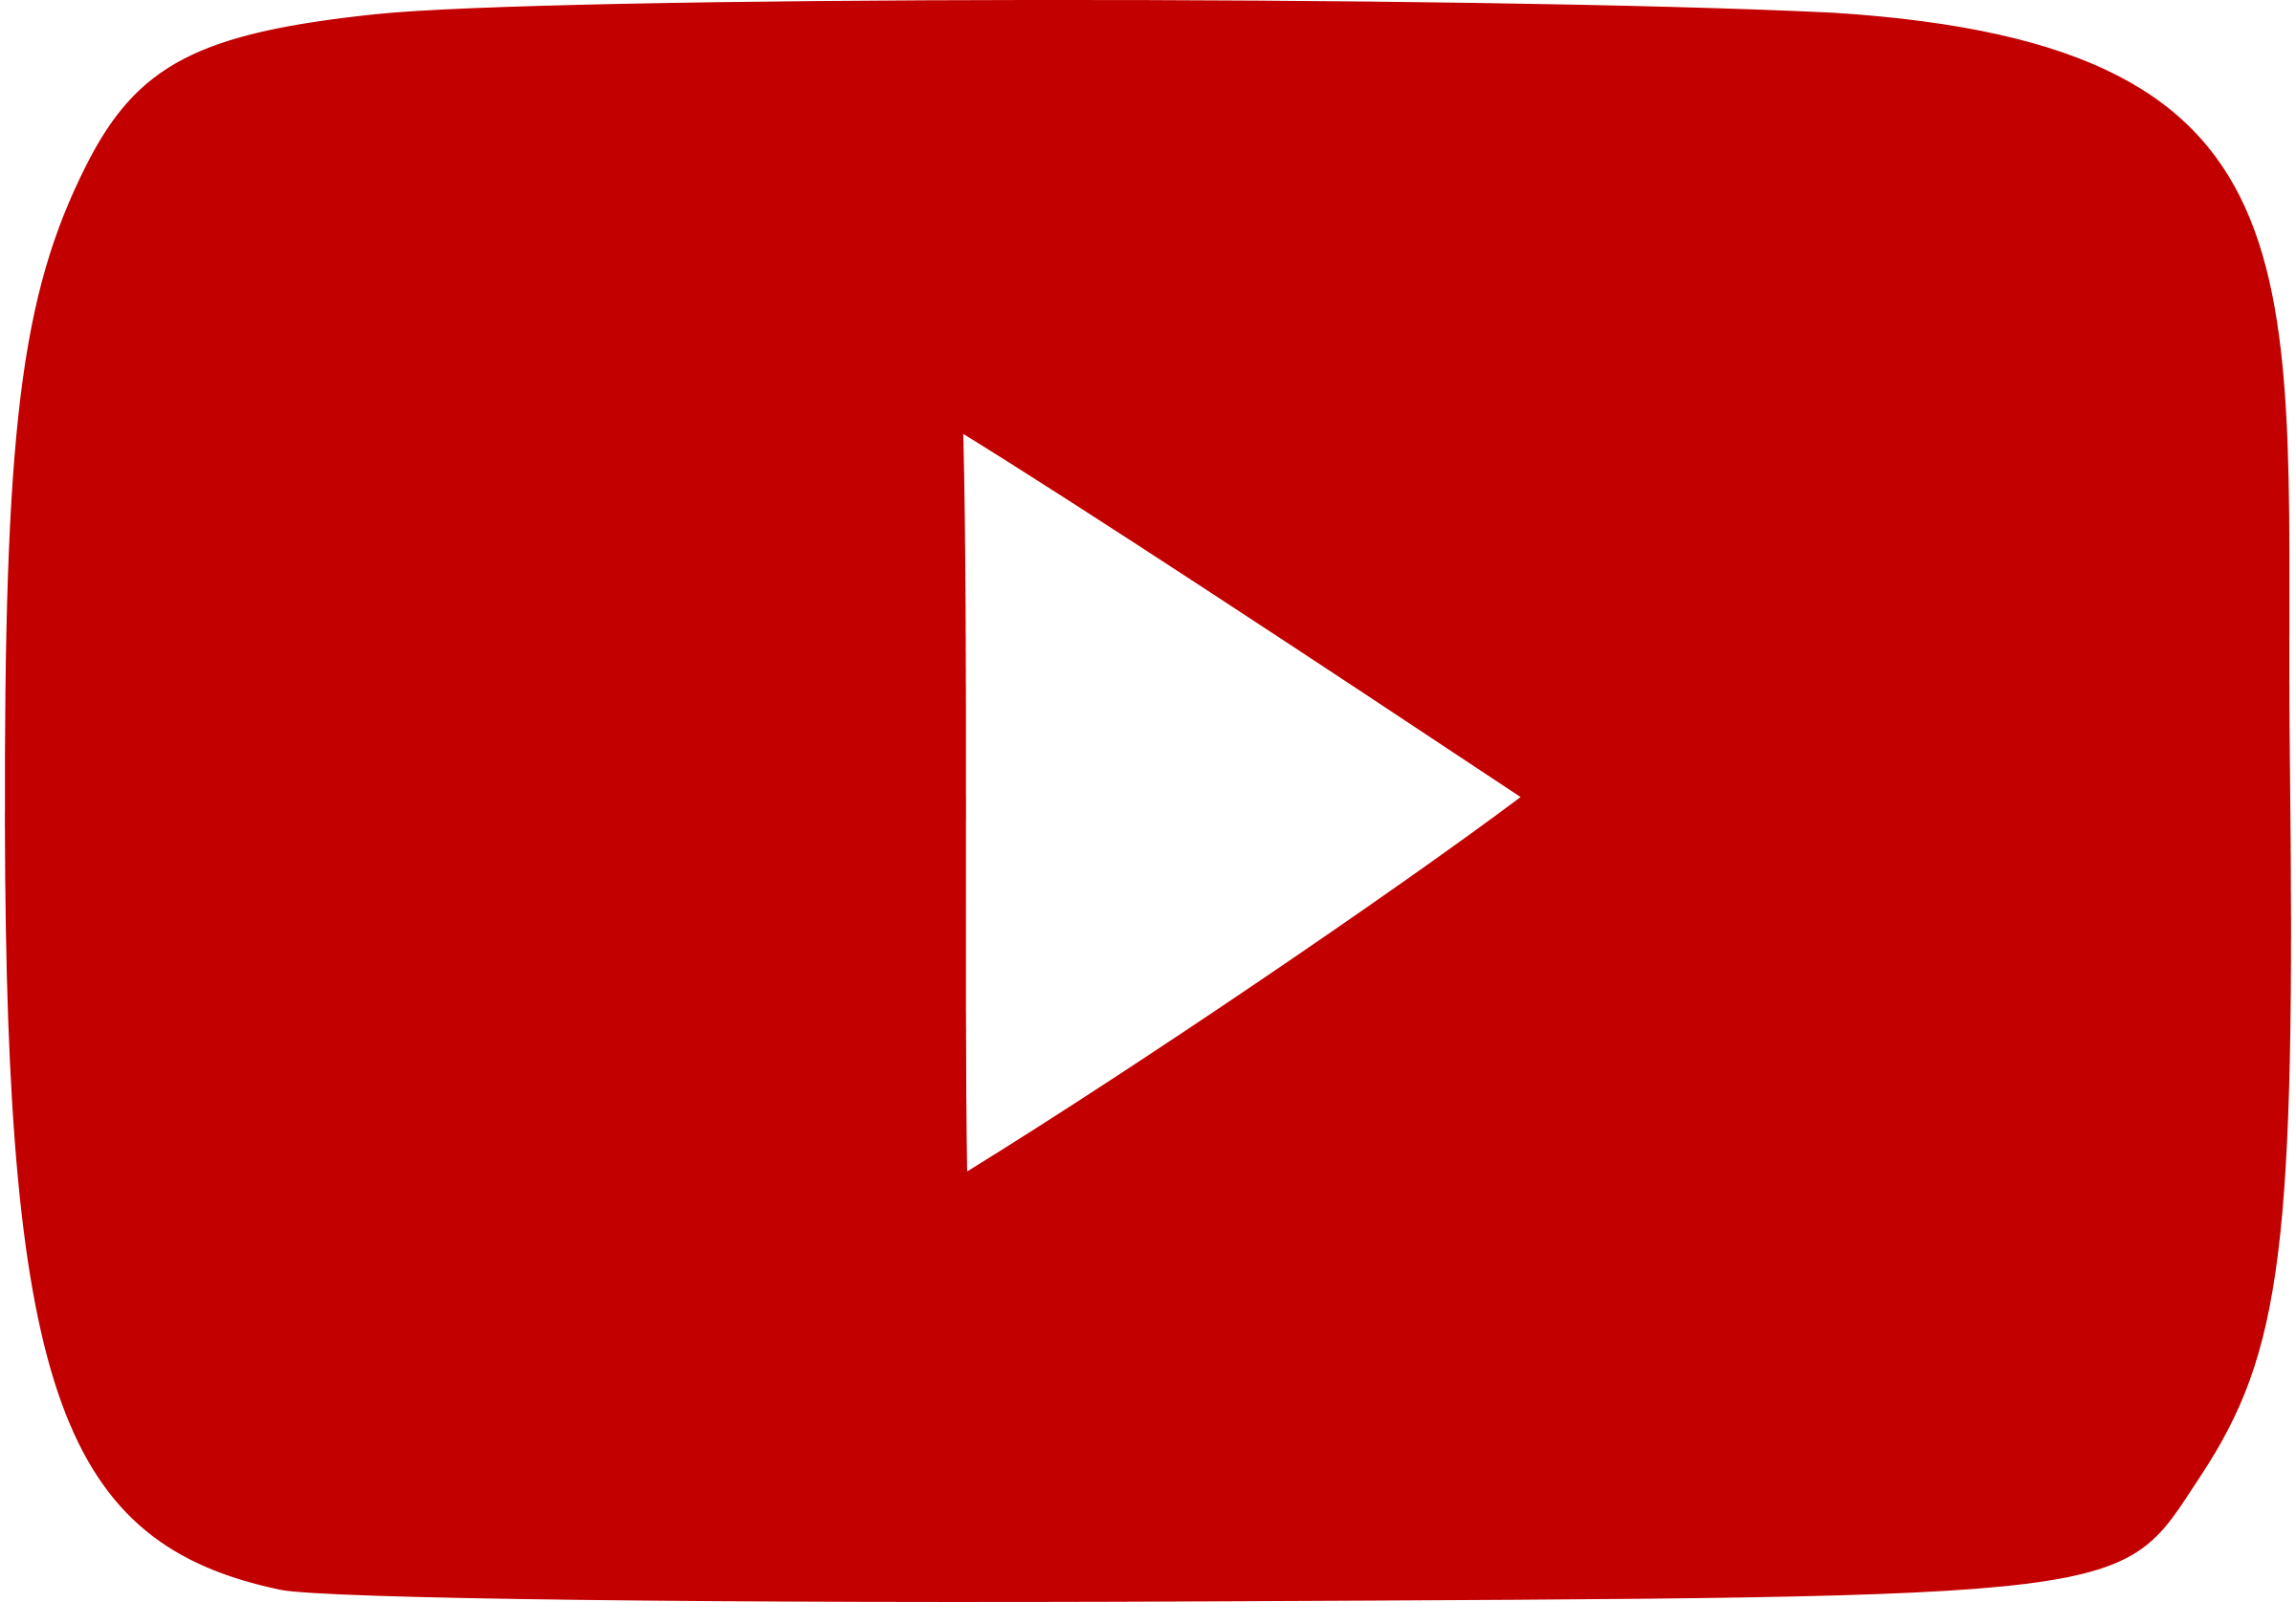 Play Button PNG Photo - Play Button PNG